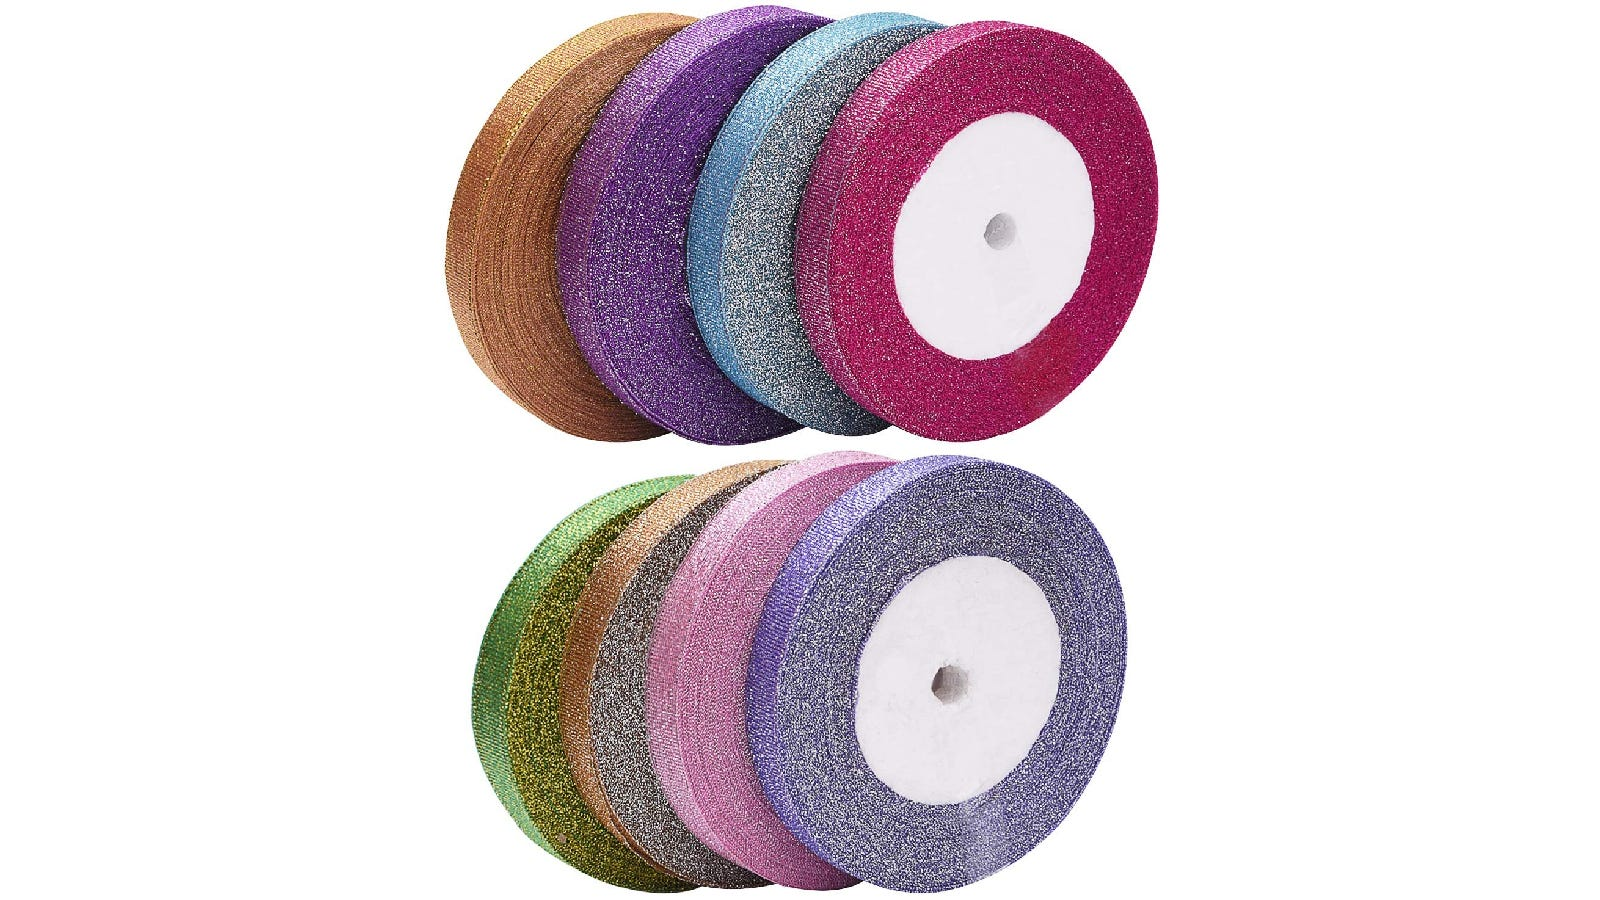 sparkly orange, purple, blue, and dark pink ribbons stacked next to each other; beneath them are green, gold, pink, and purple ribbons stacked next to each other